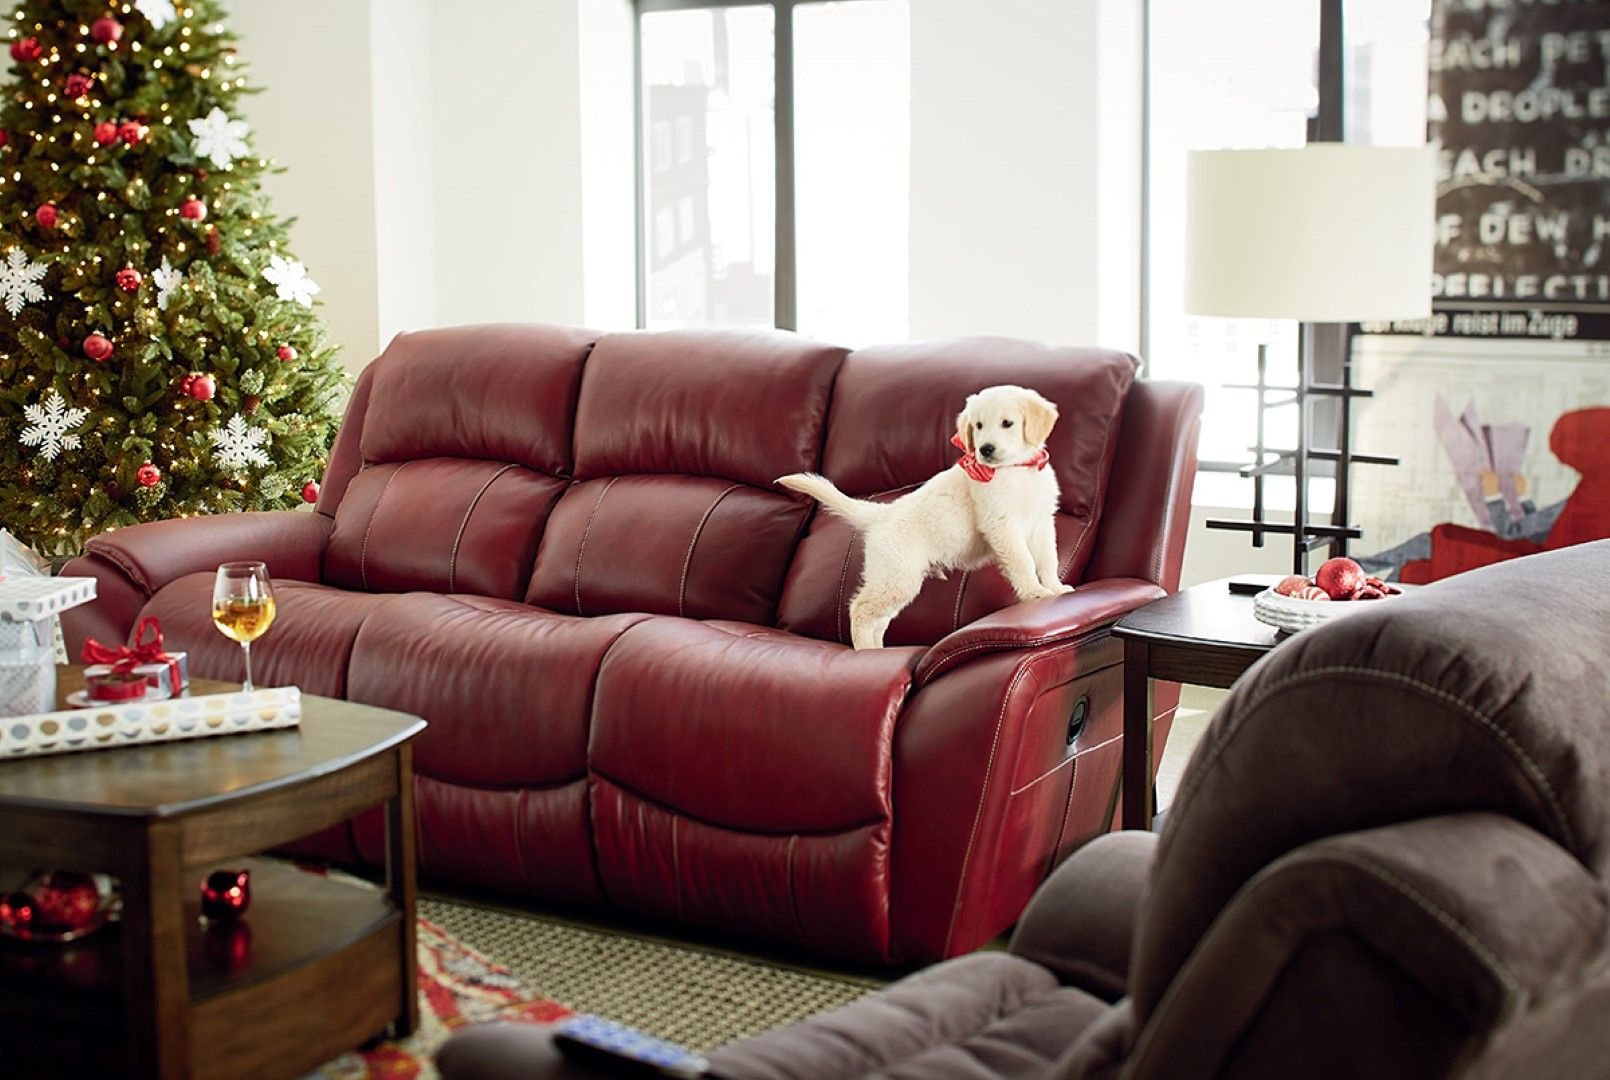 Furniture Lazyboy Sofas With A Cute Little Dog And Also A Christmas Tree And A Wooden Table In Front Of The Sofa Reclining Sofa Lazy Boy Sofas Red Leather Sofa